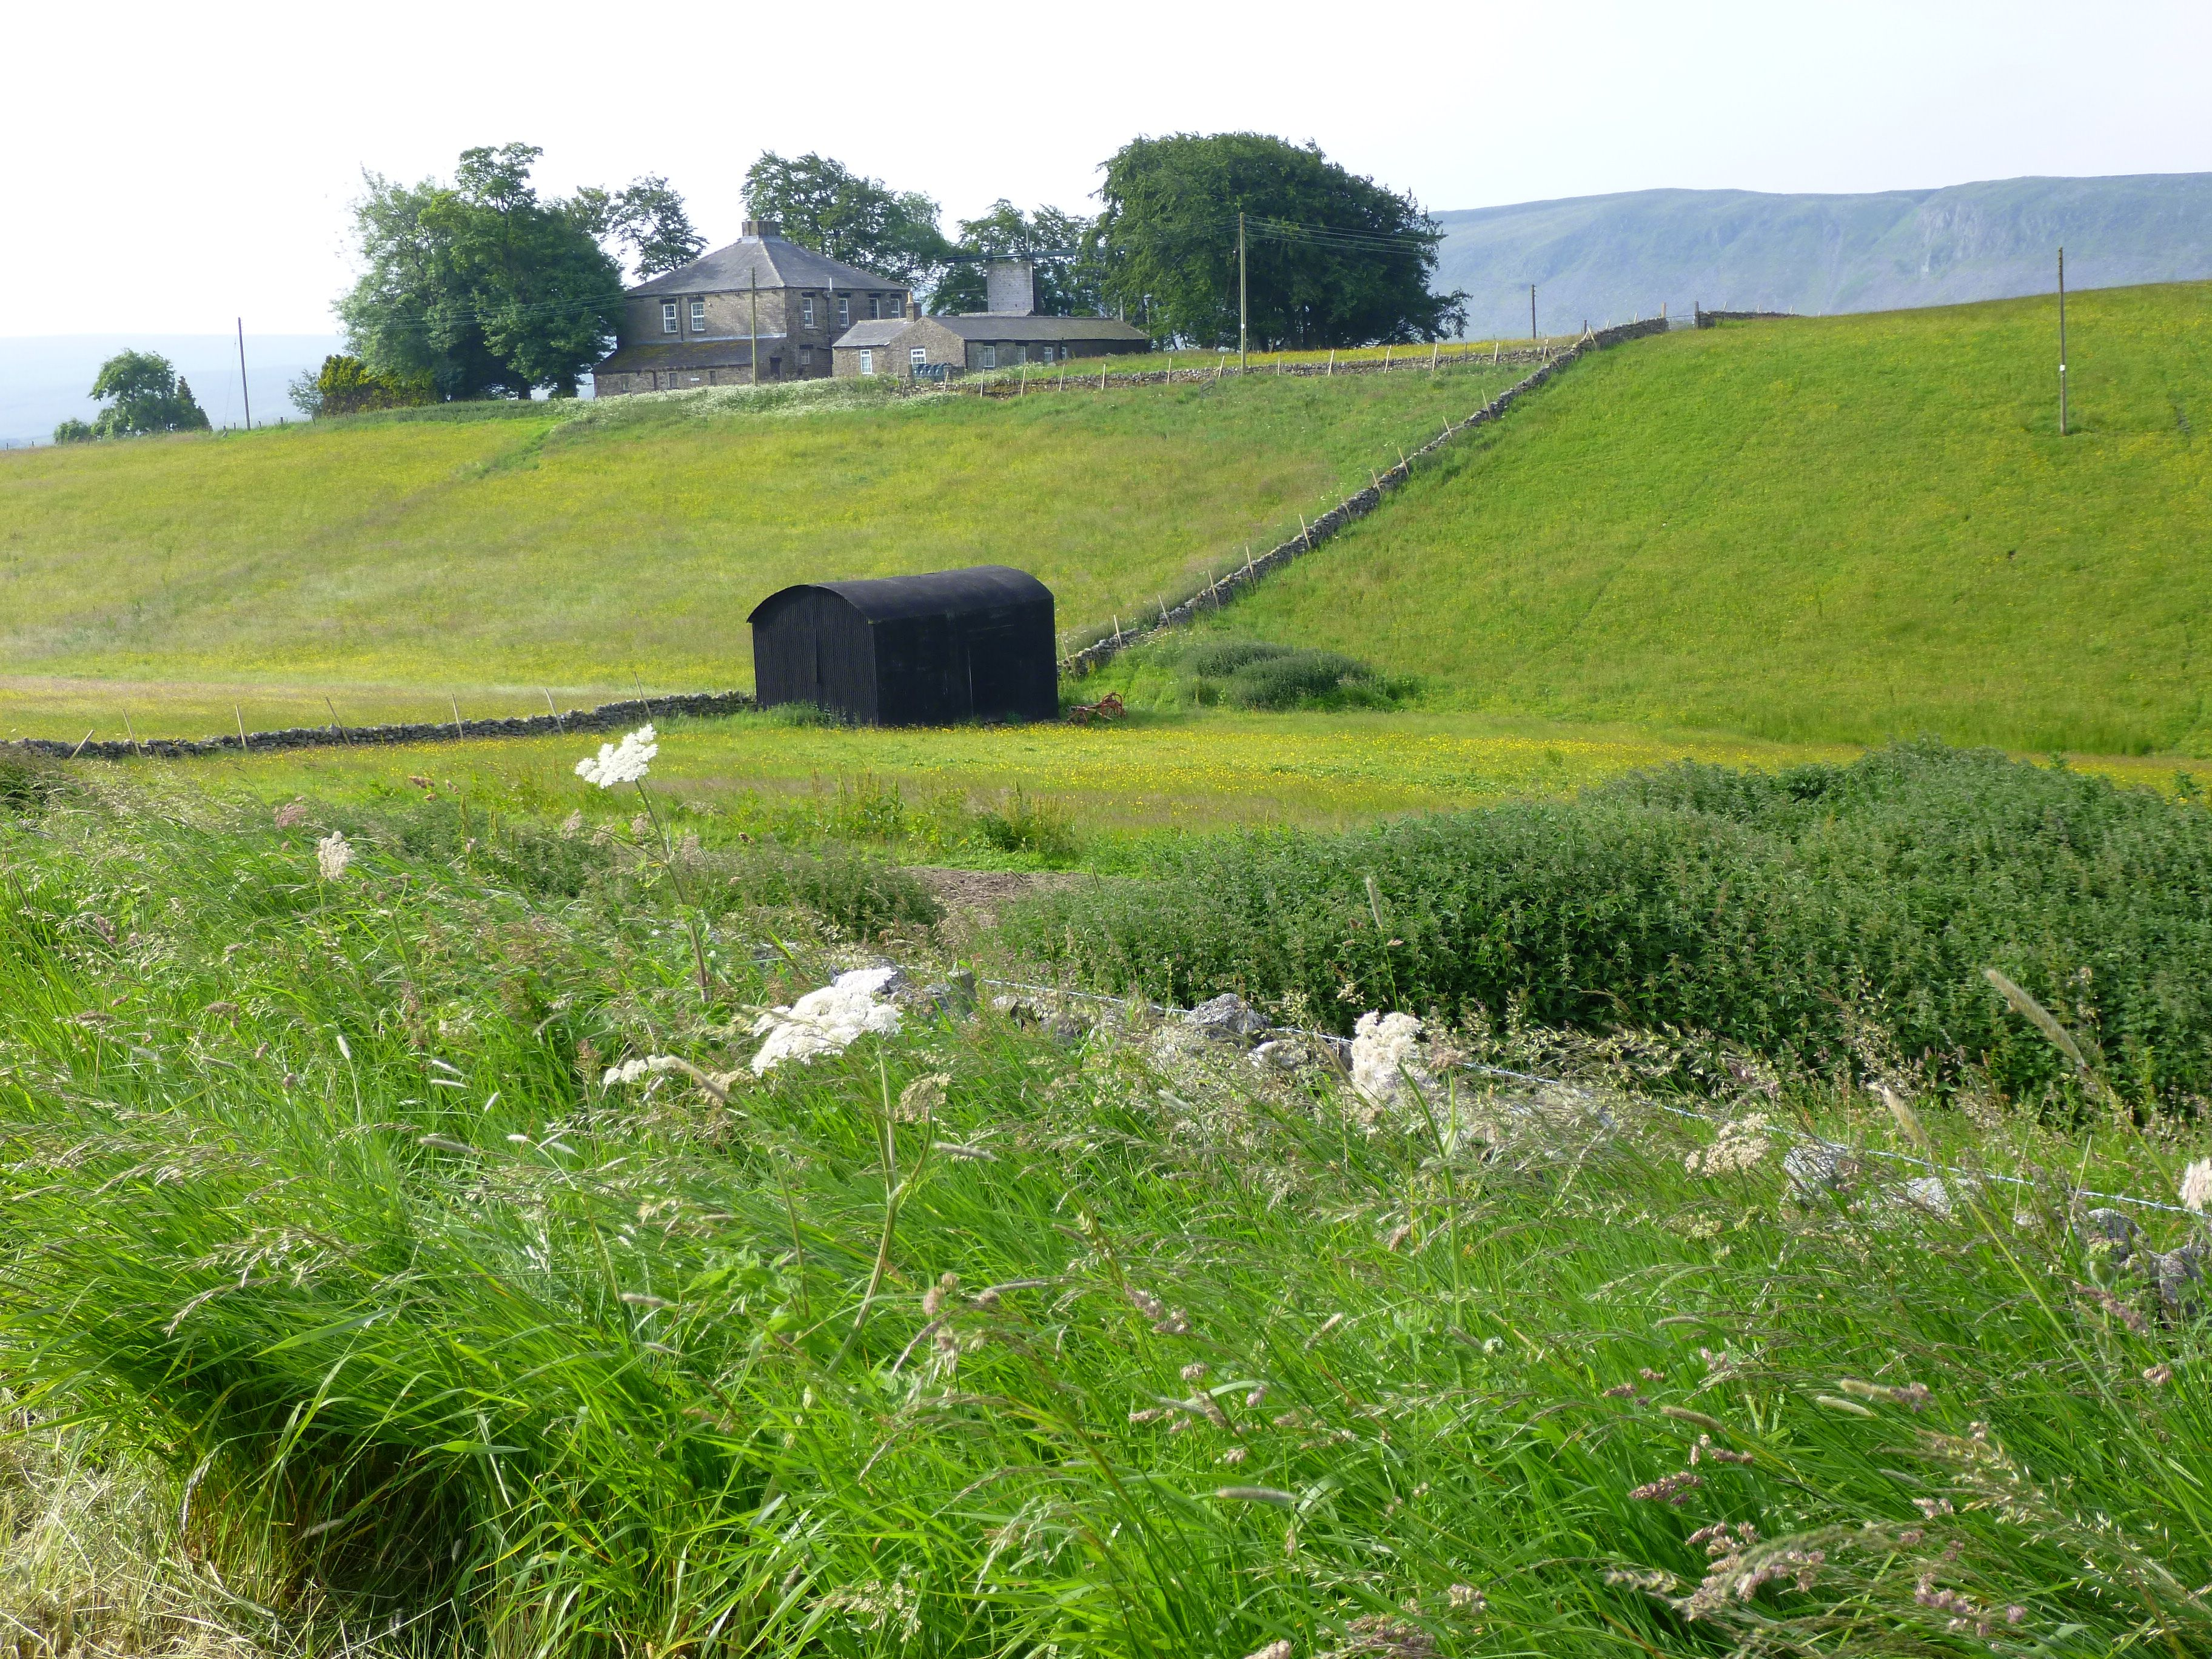 Countryside scene near Middleton in Teesdale, North-East England